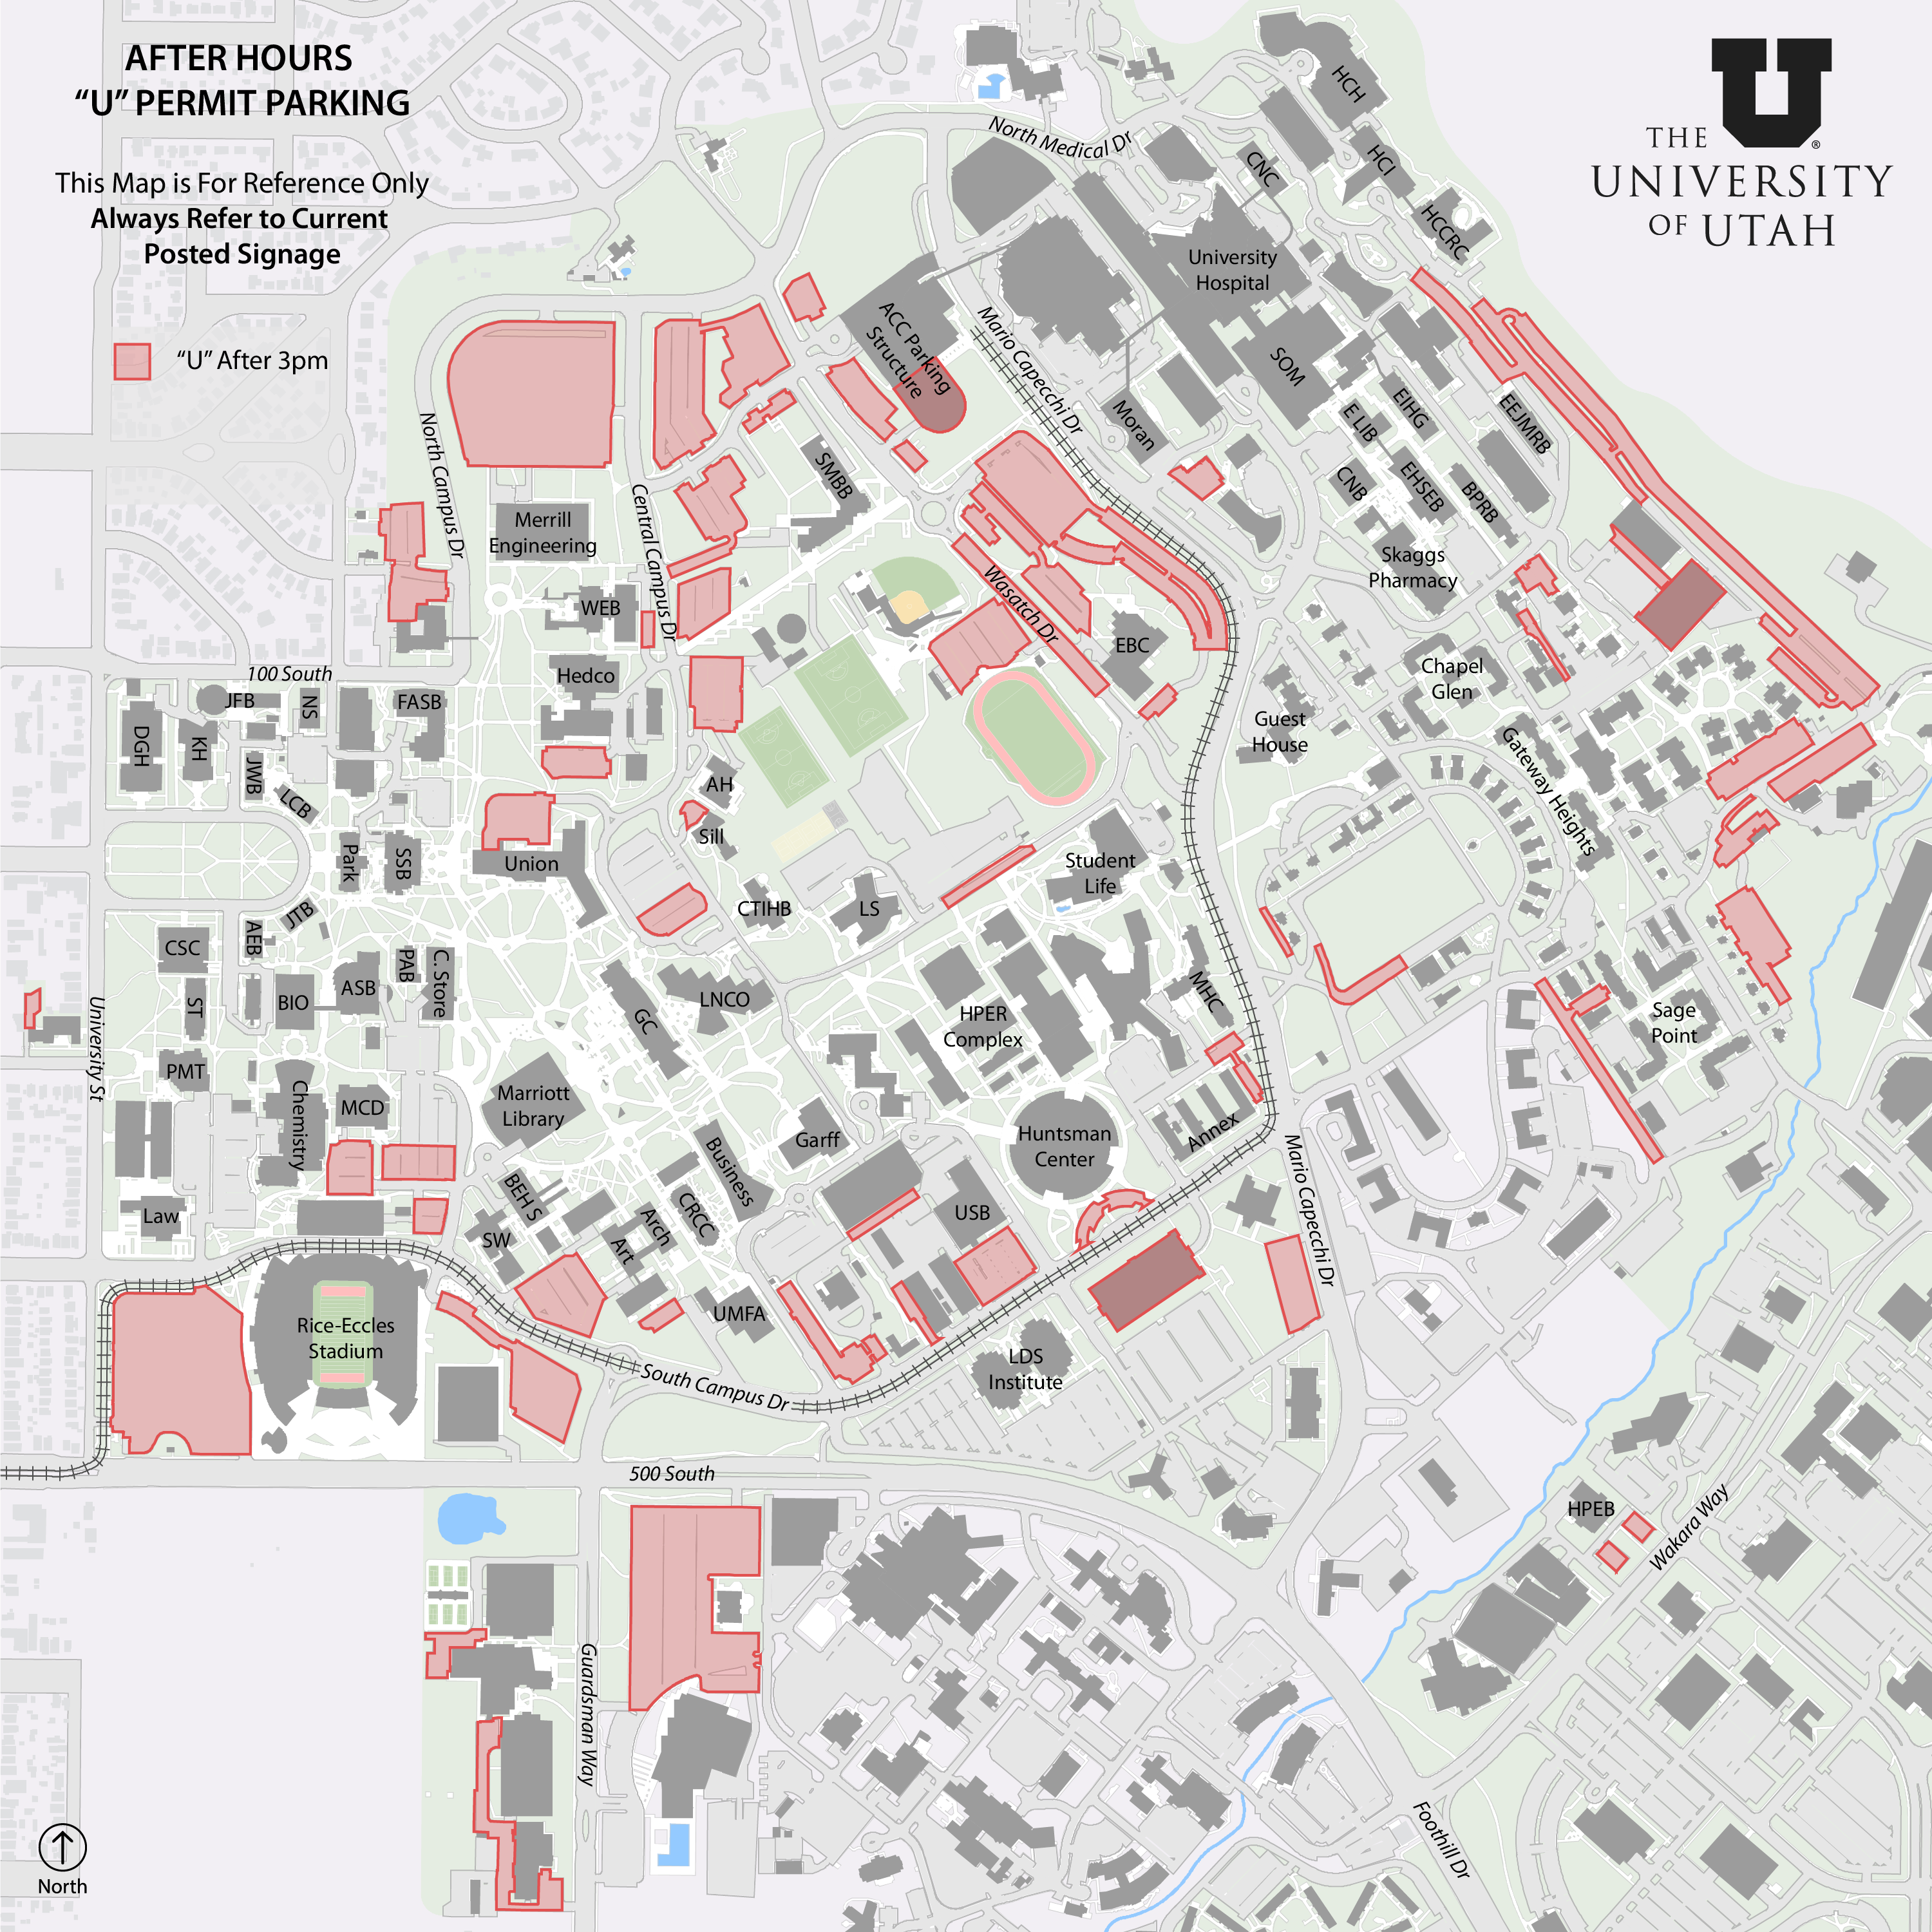 University Of Utah Map From 'A' to 'U' | @theU